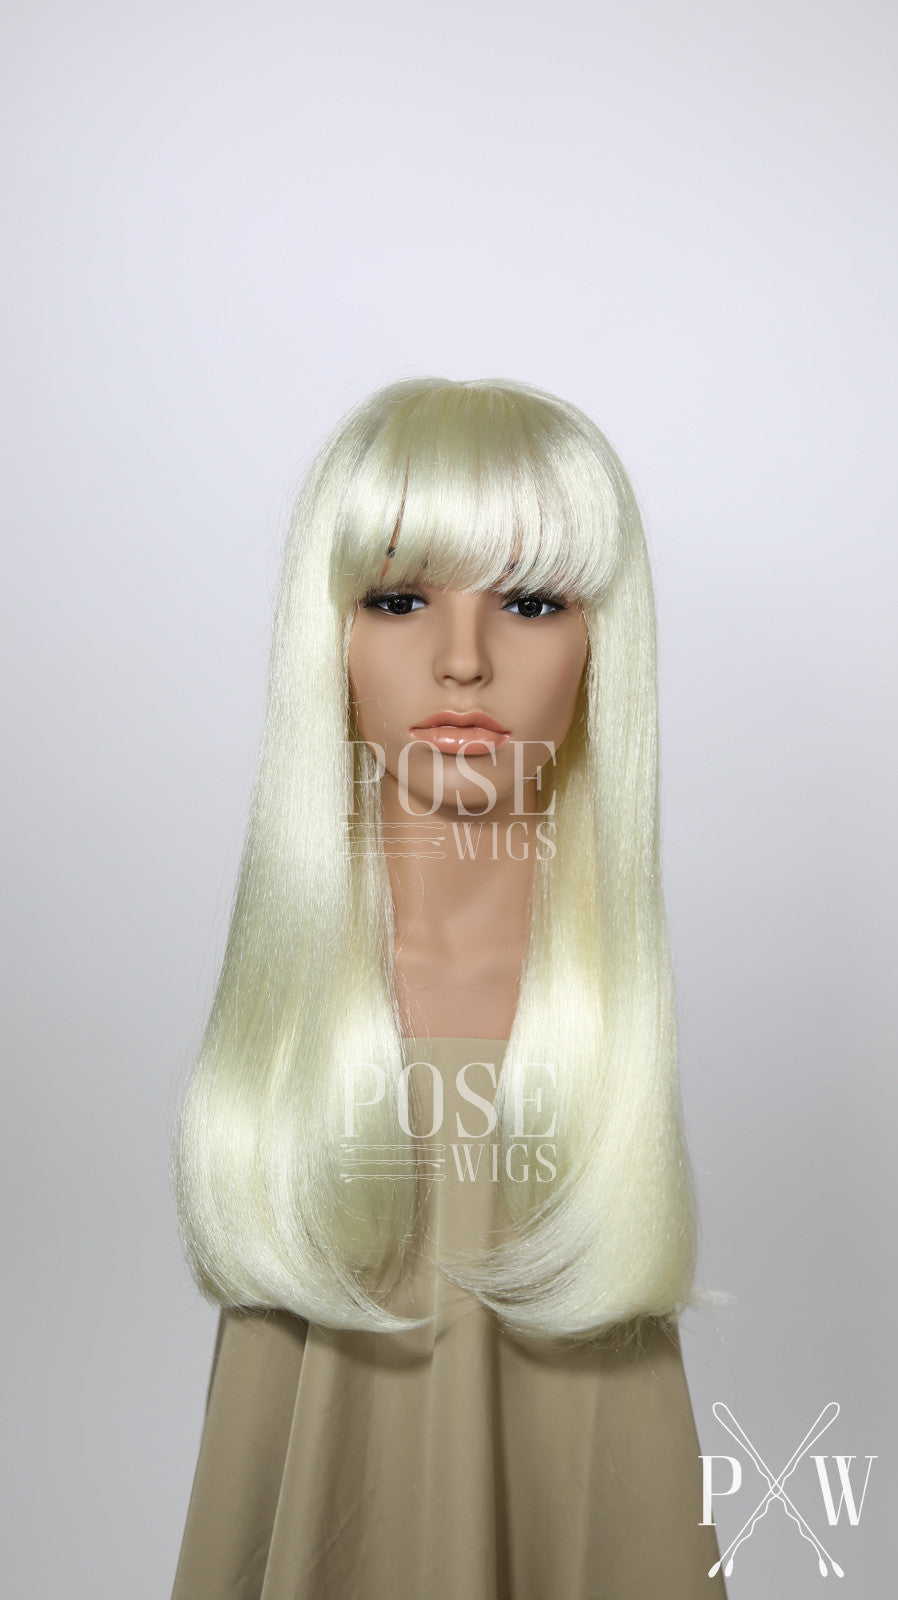 sc 1 st  Pose Wigs & White Blonde Long Straight with Bangs Costume Wig FKEL45 u2013 Pose Wigs